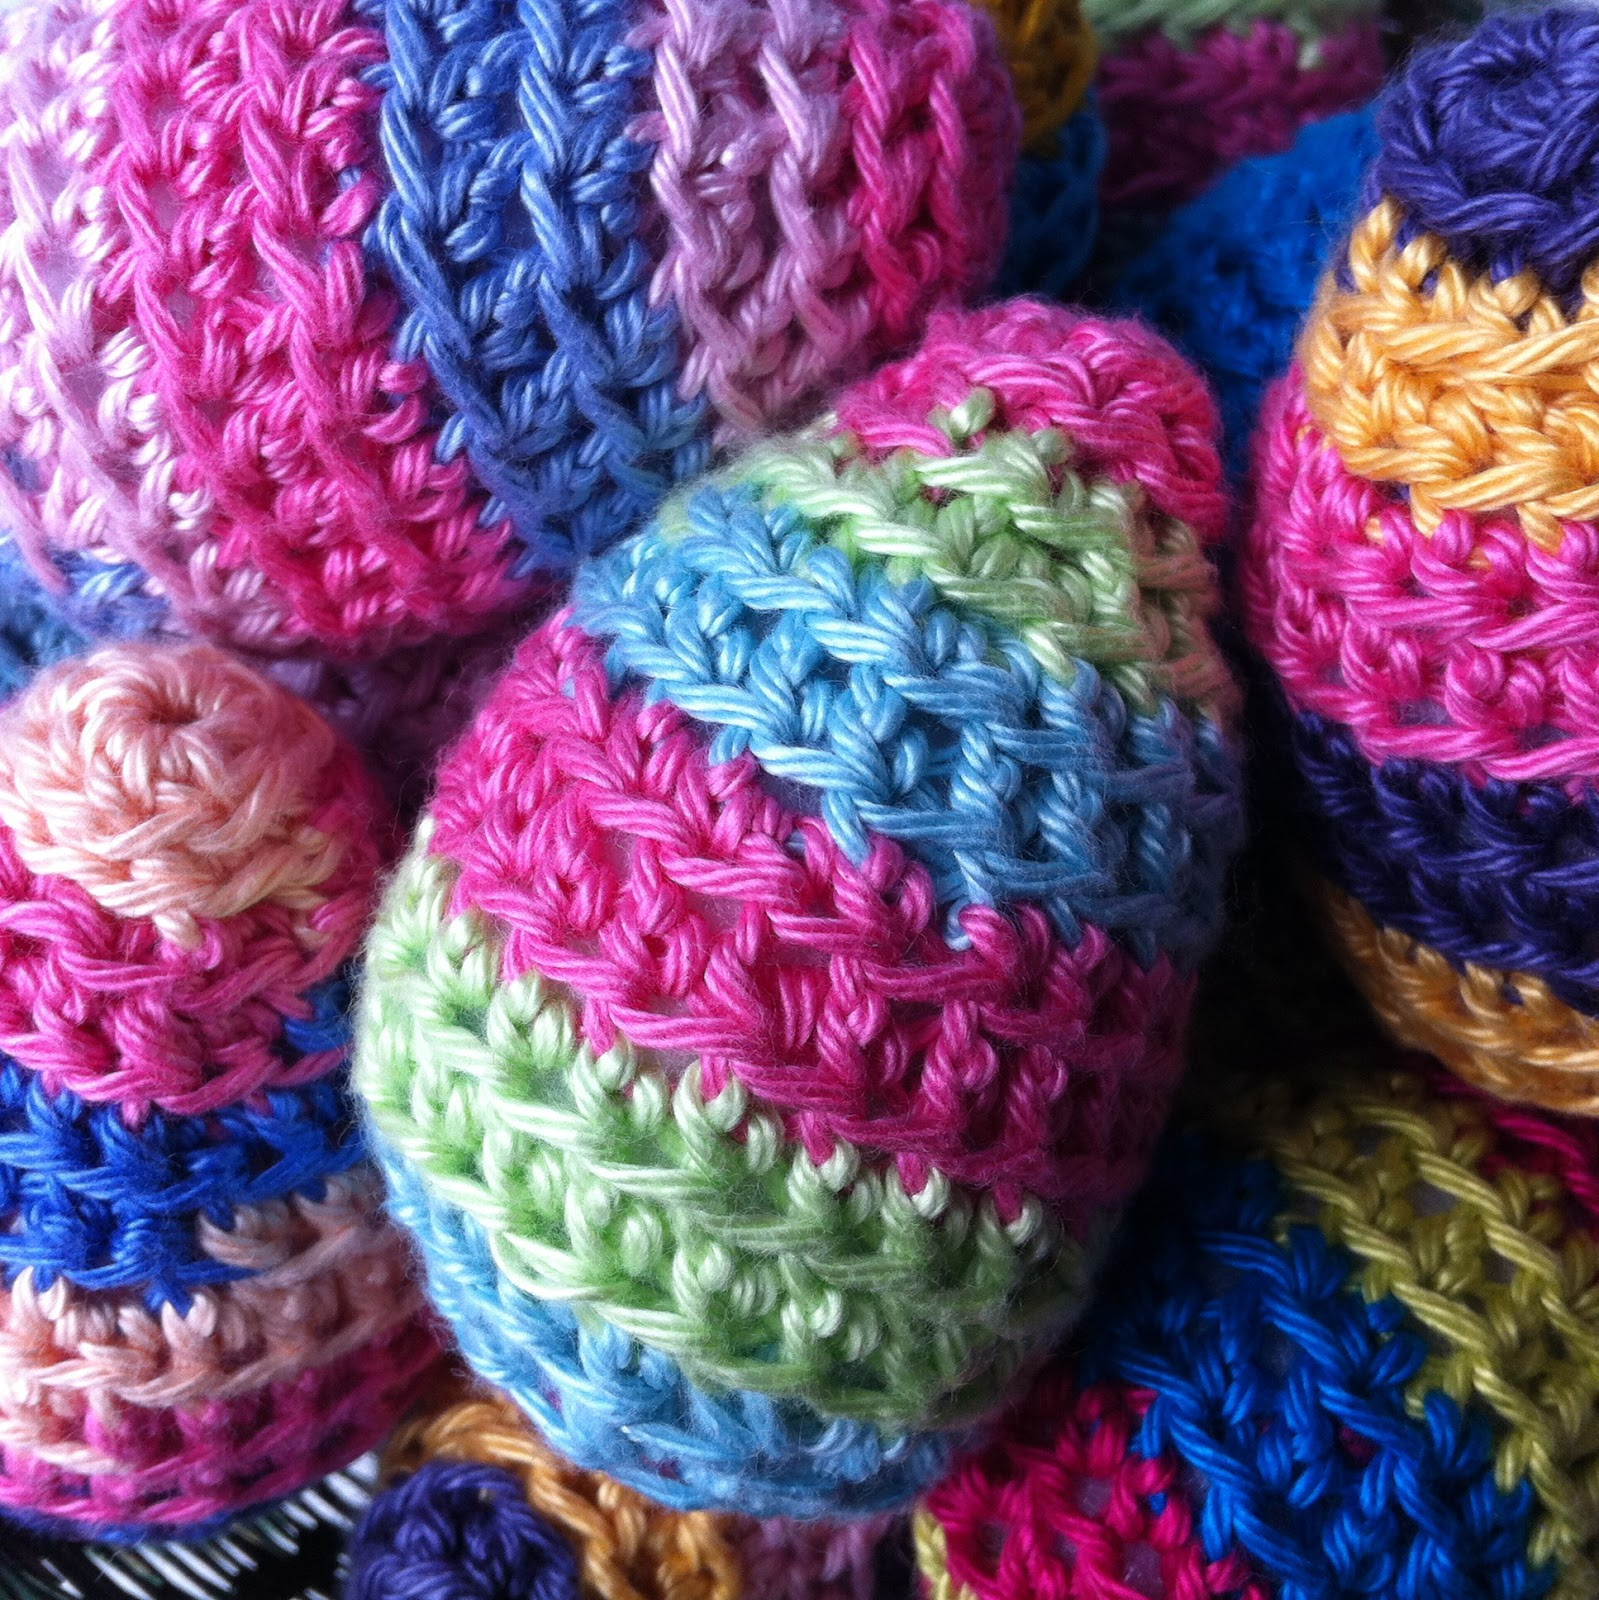 Crochet Easter Eggs Fresh Mrs Thomasina Tittlemouse Crochet Easter Eggs Of Incredible 43 Ideas Crochet Easter Eggs